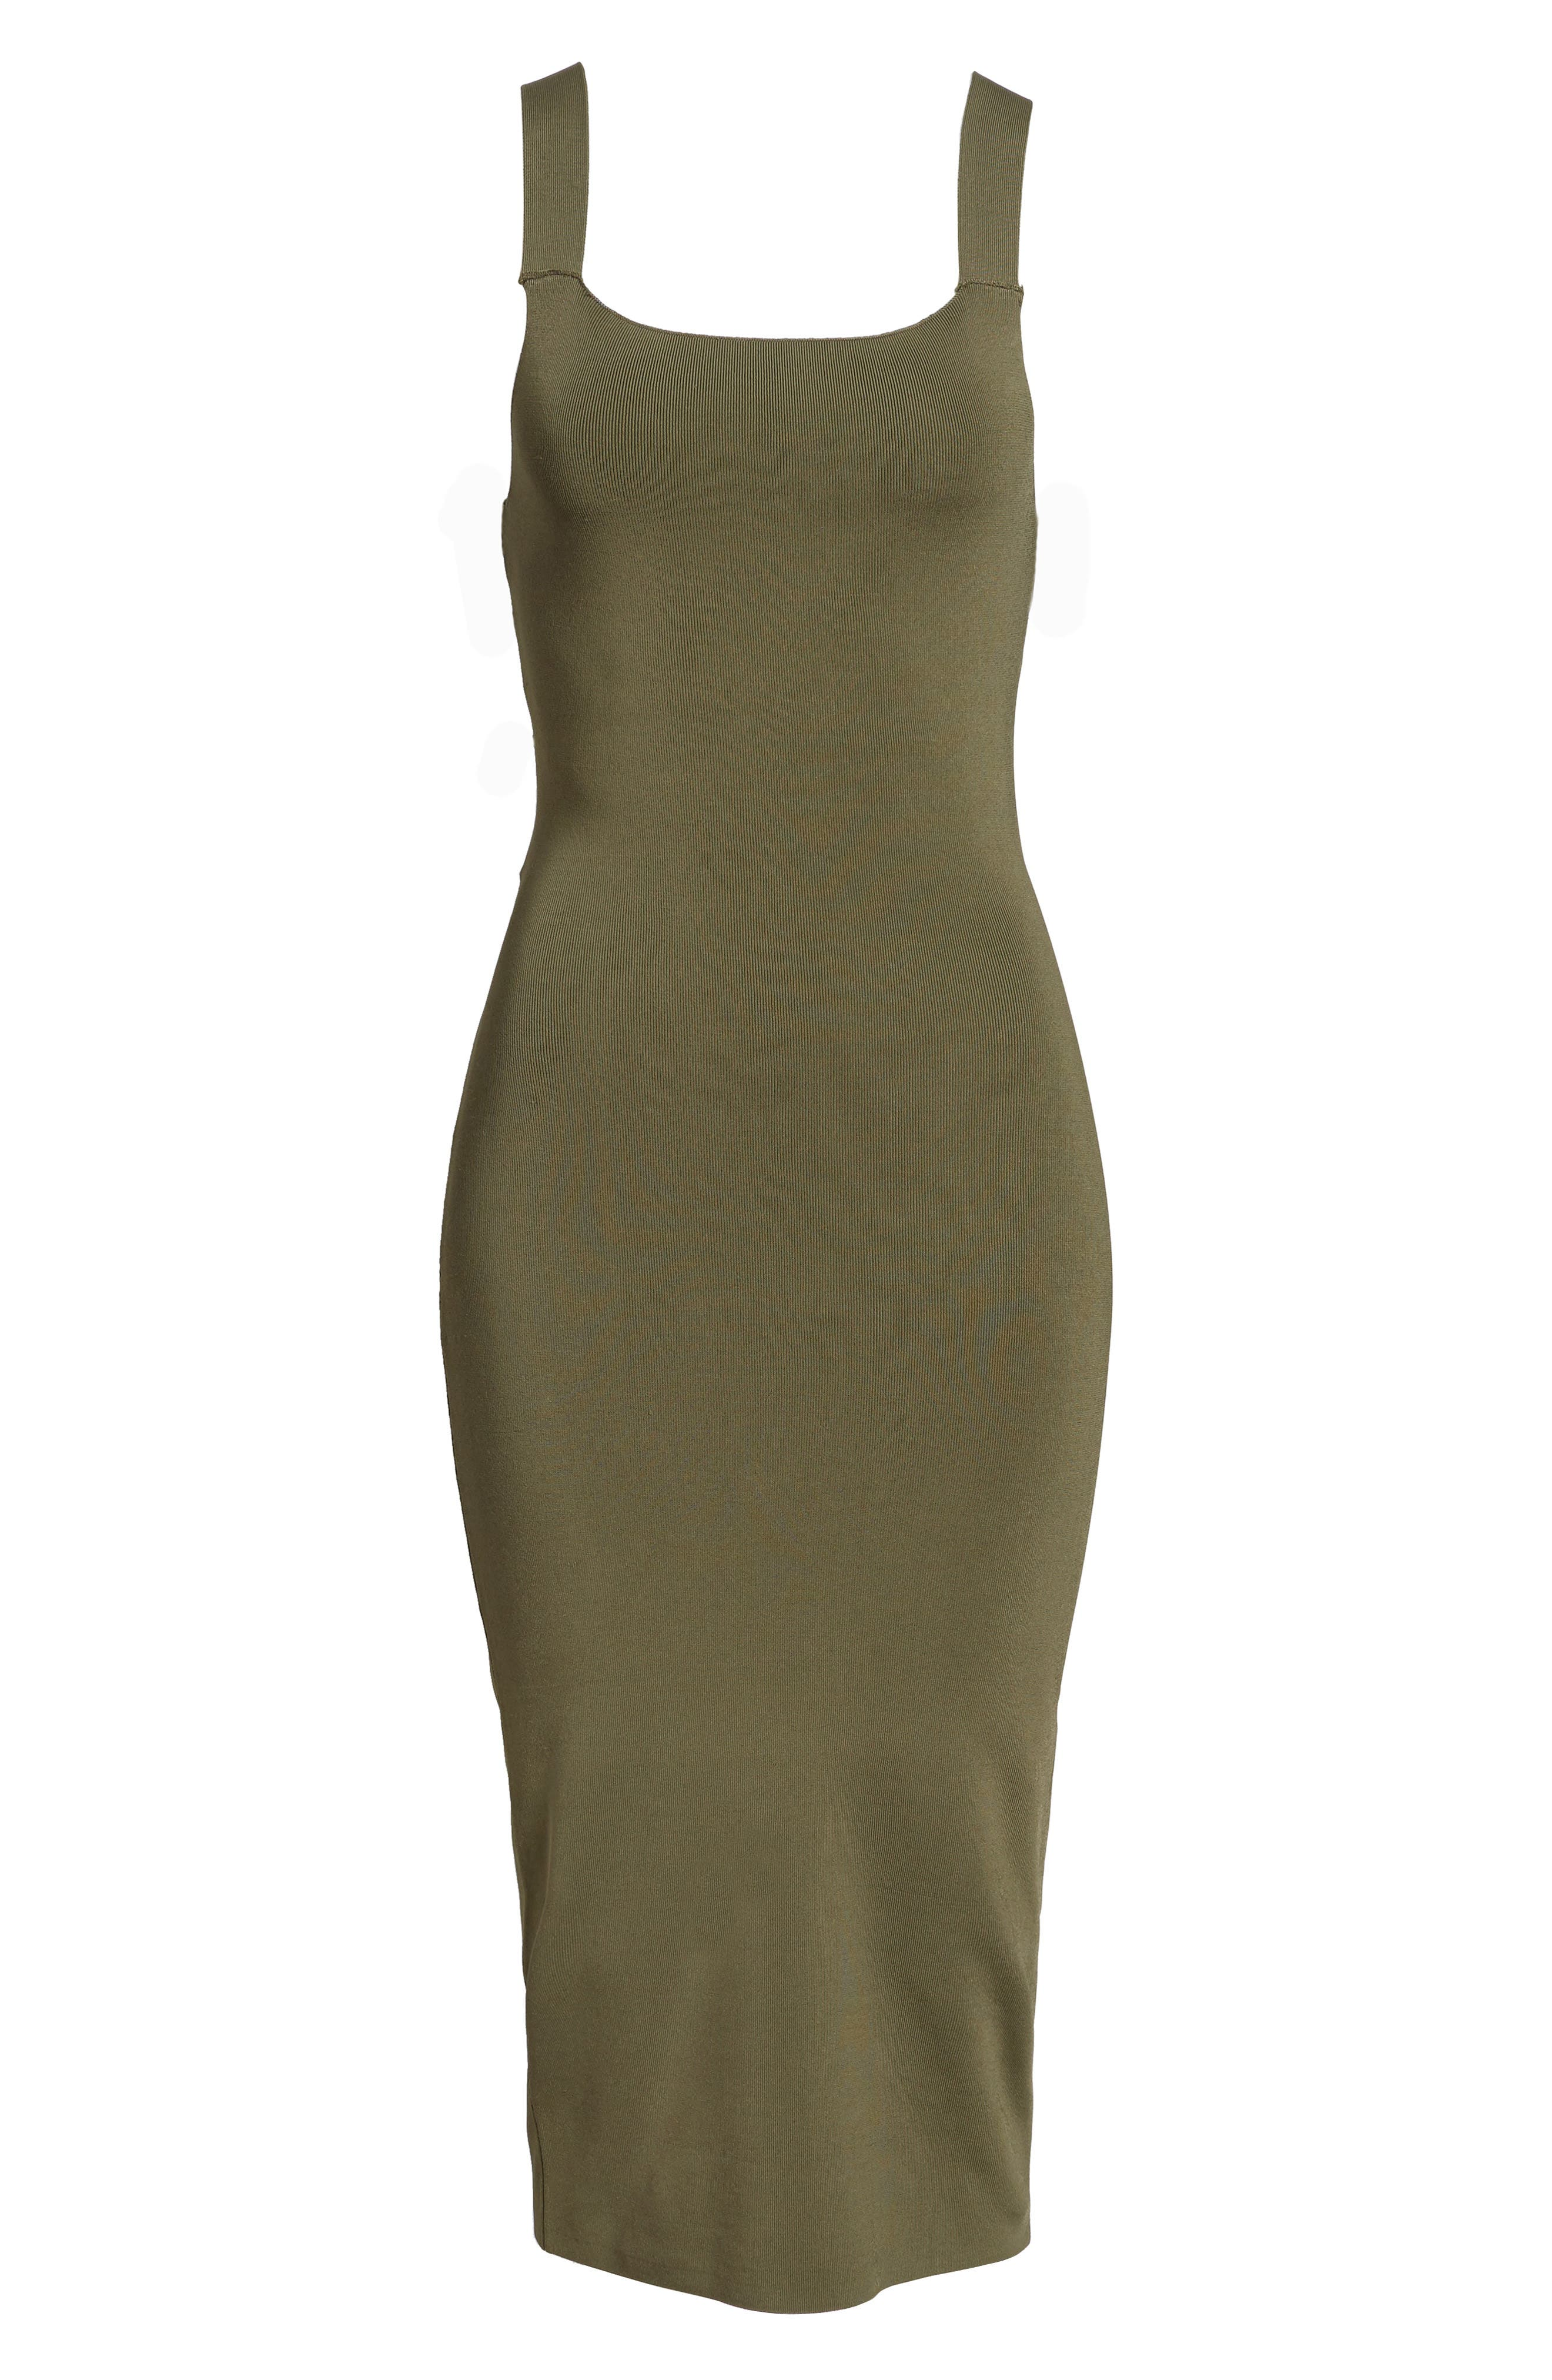 Strappy Back Sweater Dress,                             Alternate thumbnail 6, color,                             Olive Sarma